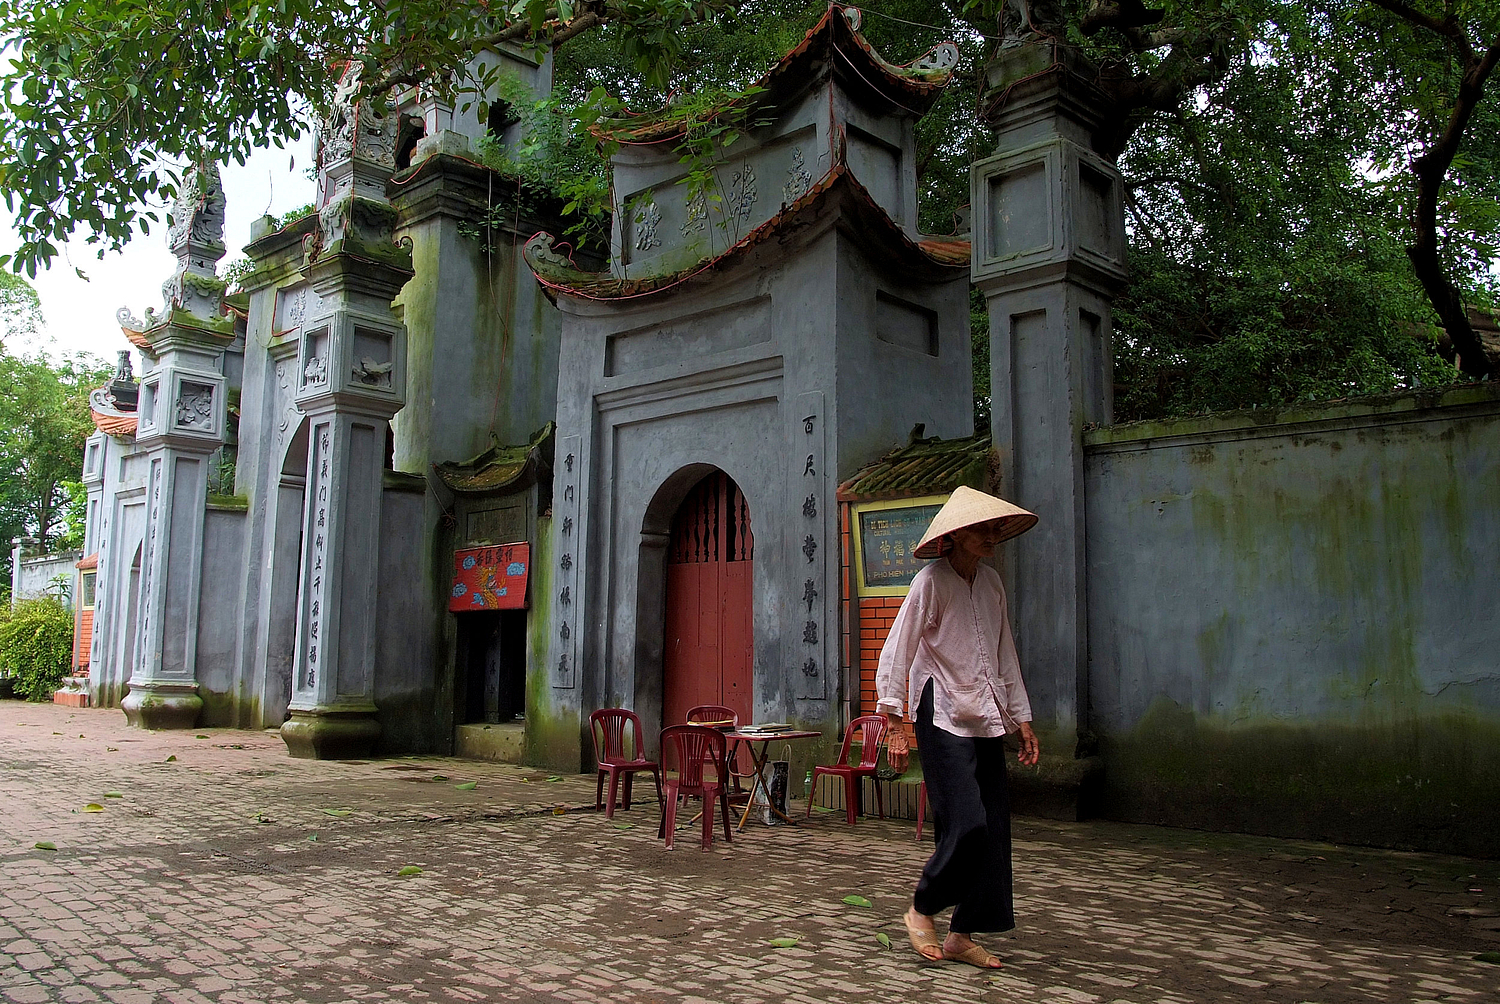 Old Woman at the Temple